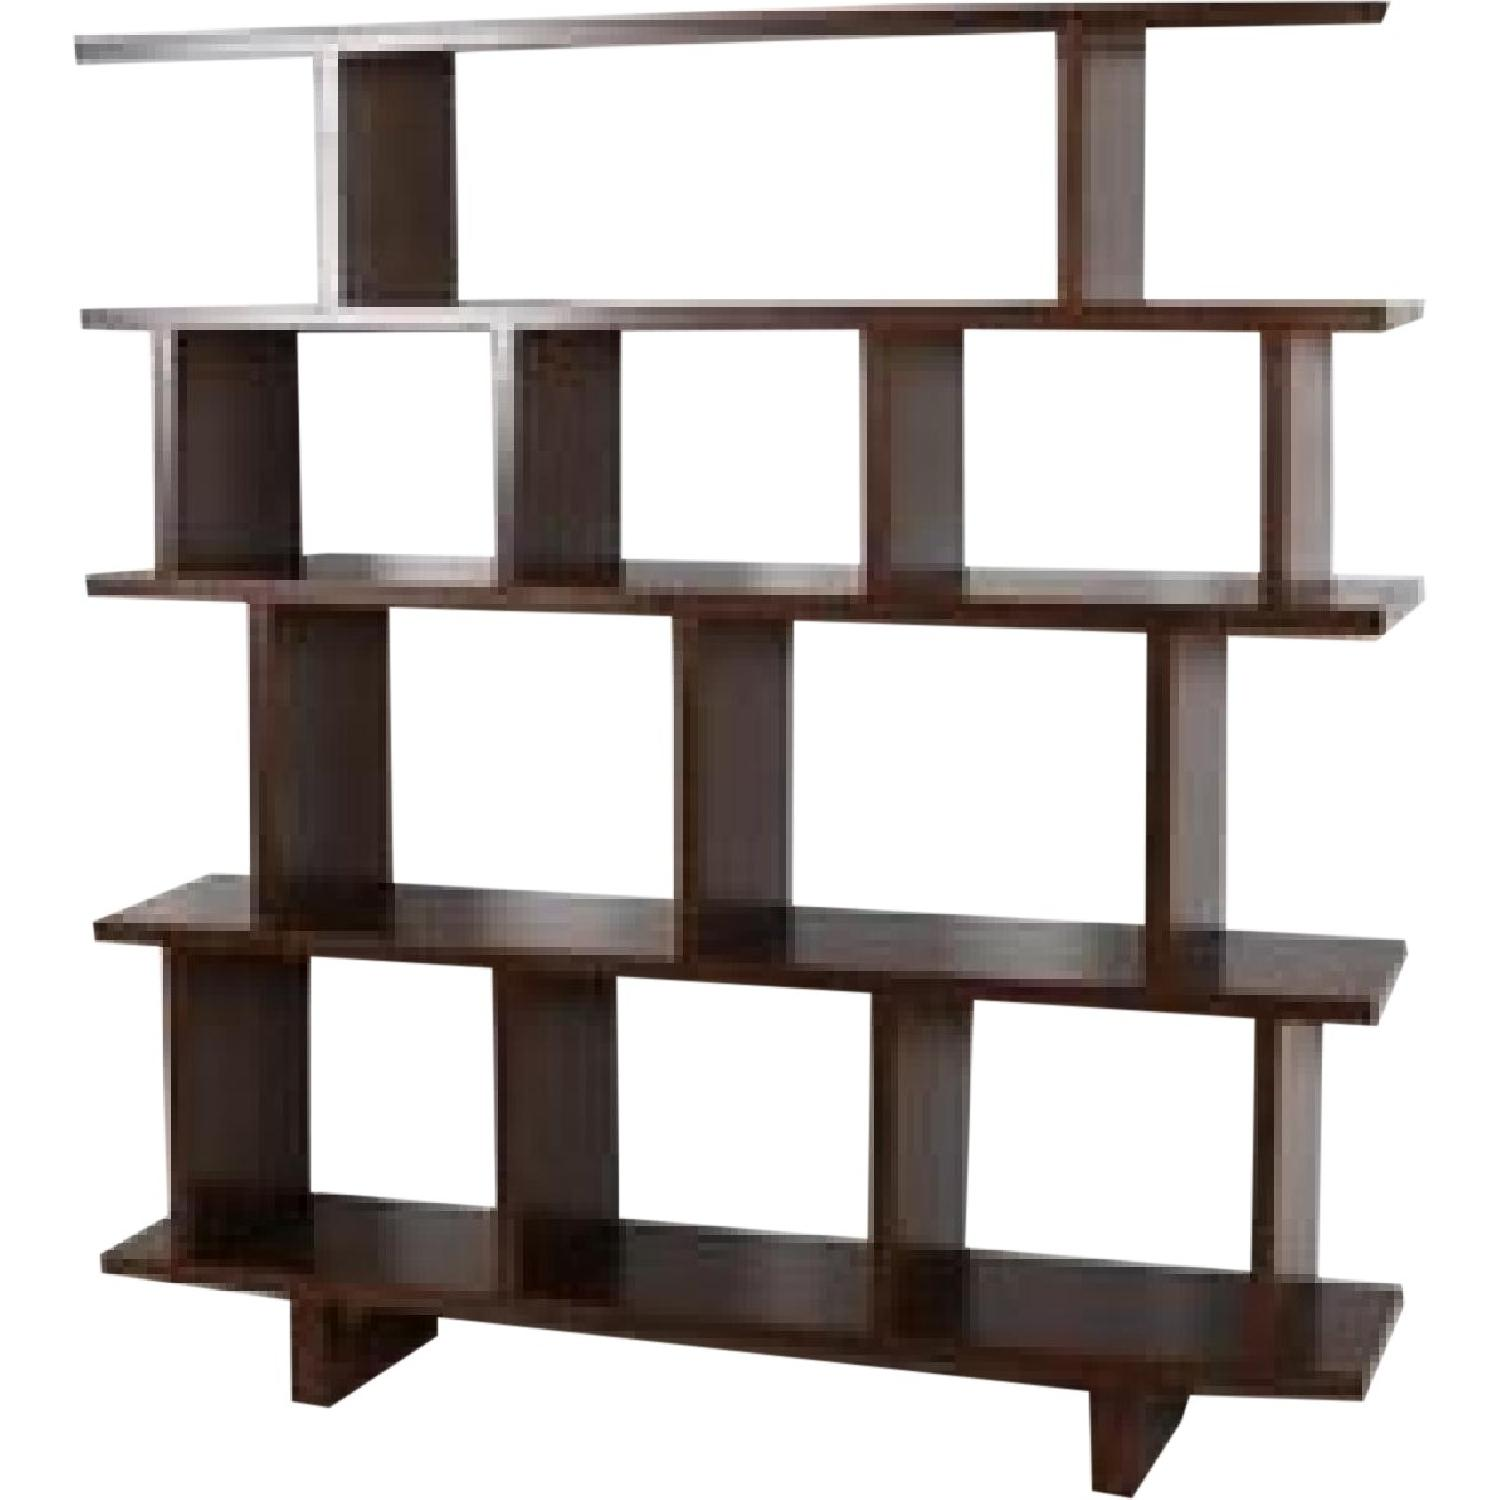 Room & Board Kiva Shelving Unit in Espresso